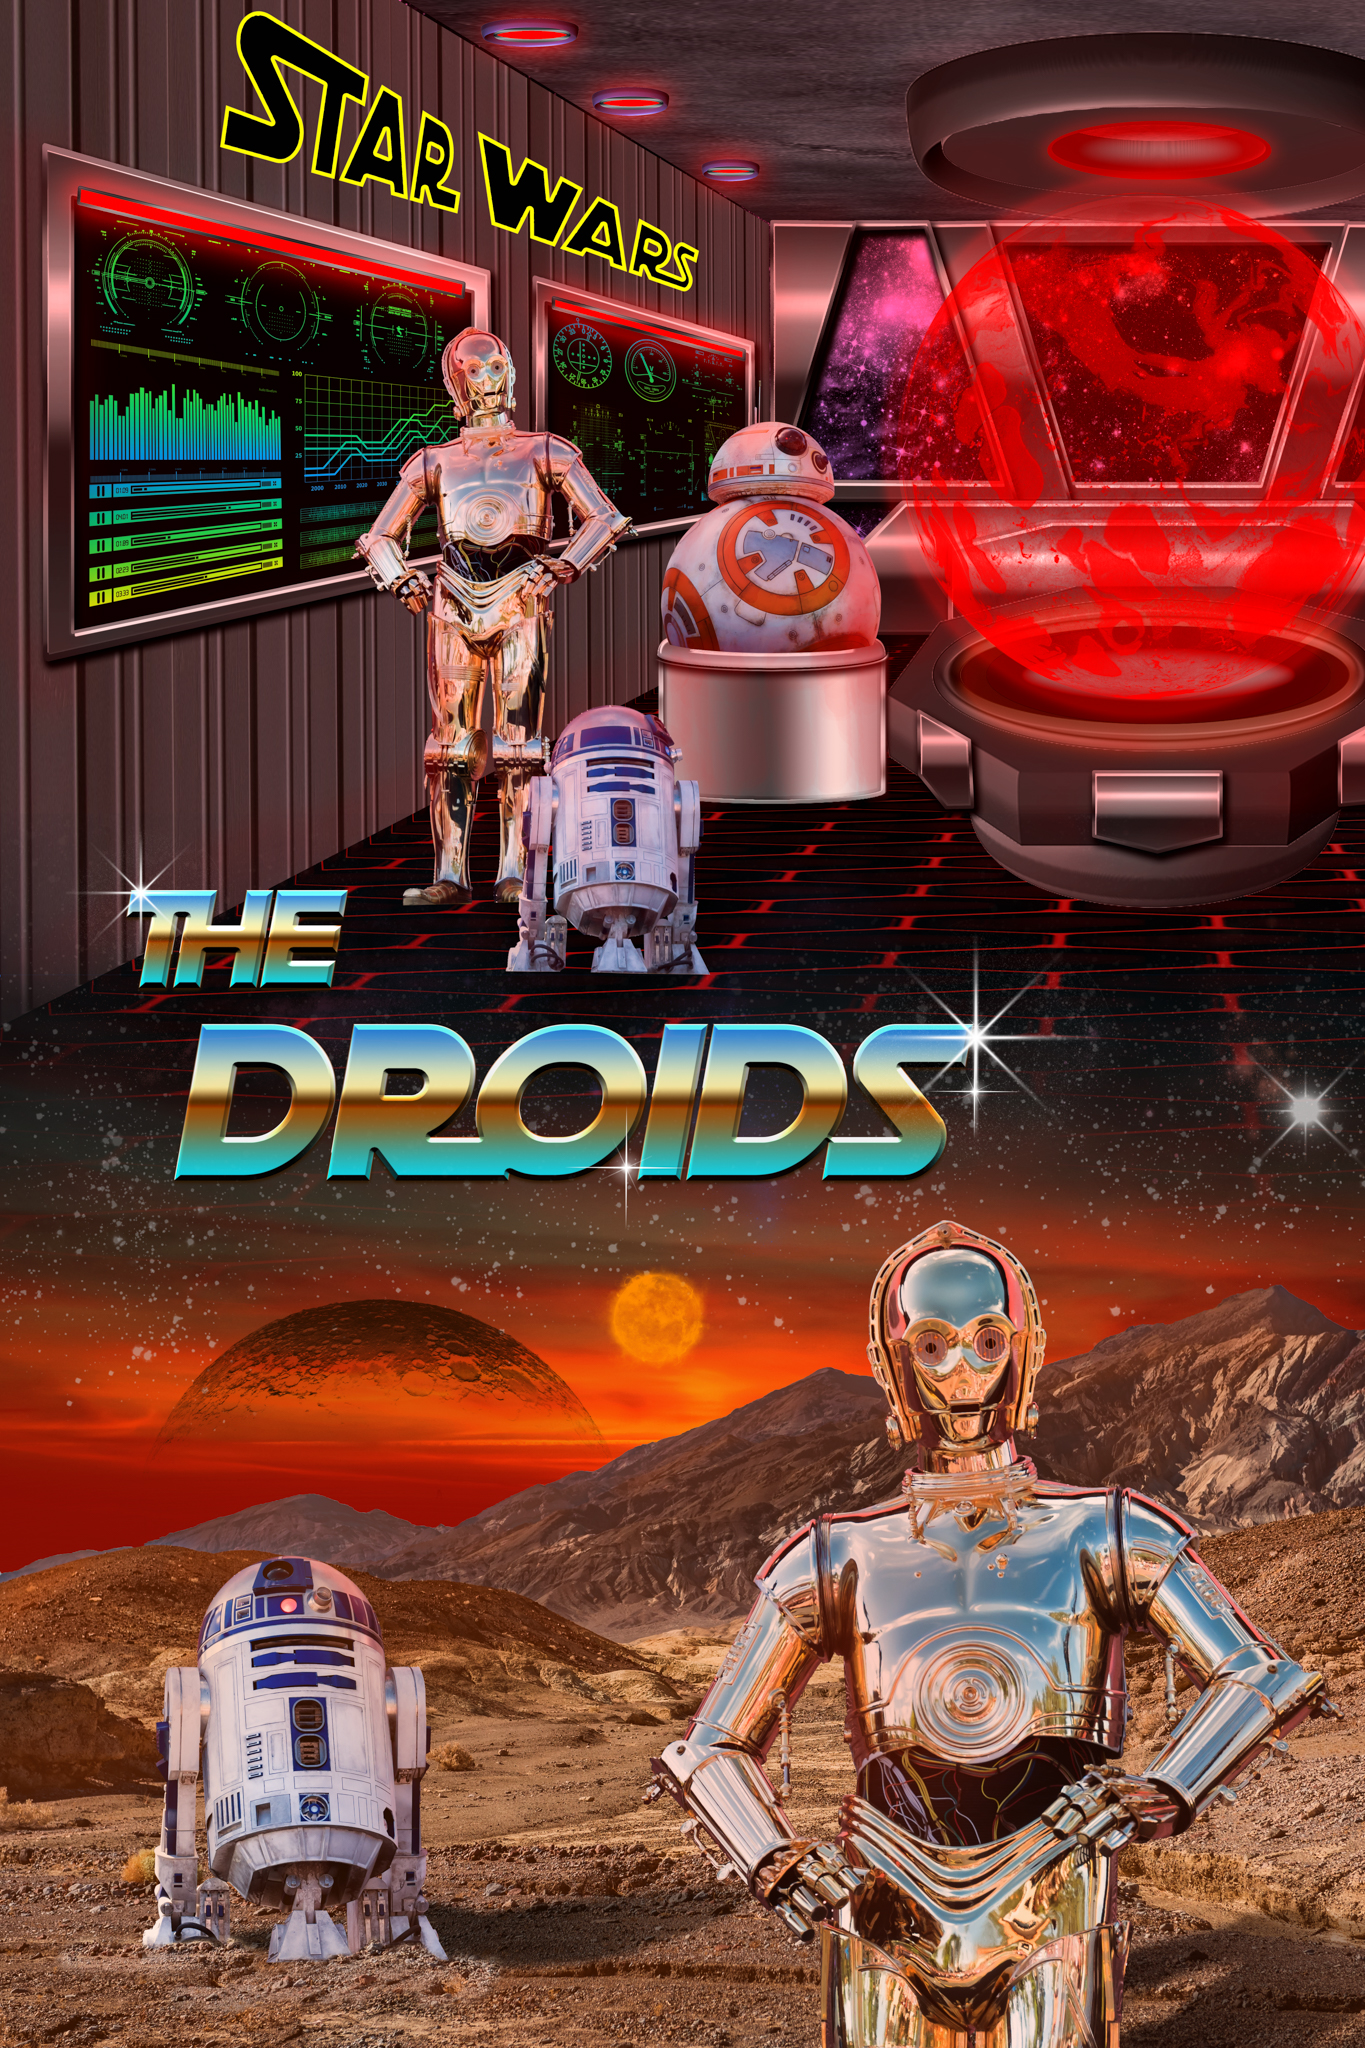 The Star Wars Droids – Poster Three